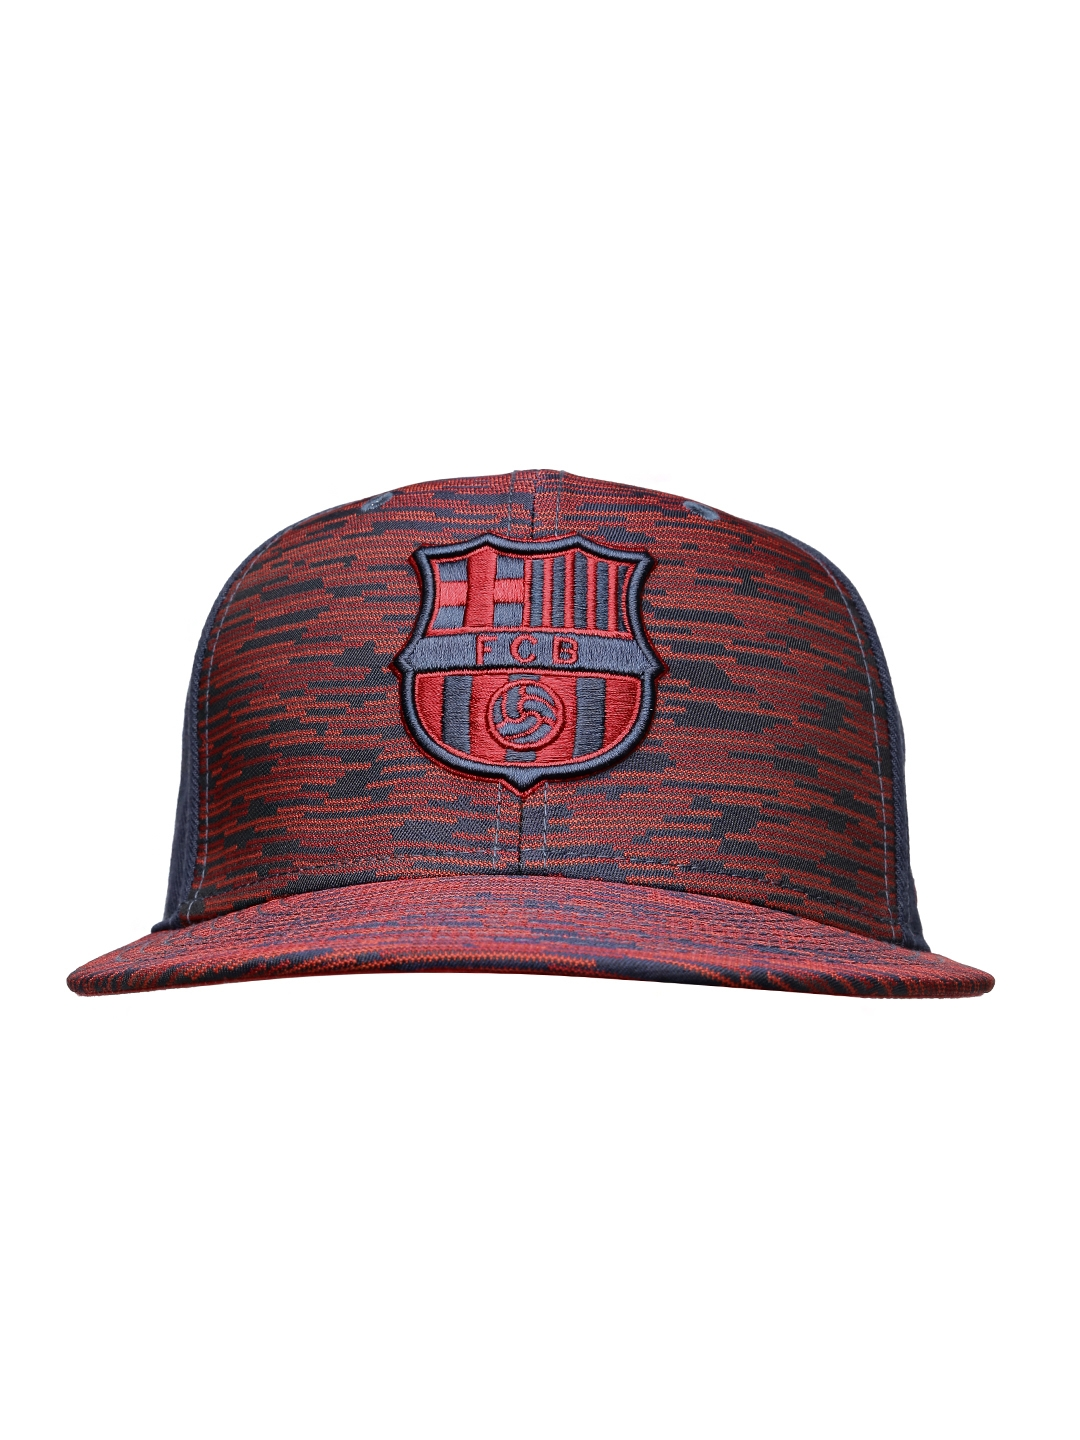 Buy Nike Unisex Navy   Red FCB Cap - Caps for Unisex 1110525  51a2219b2bc